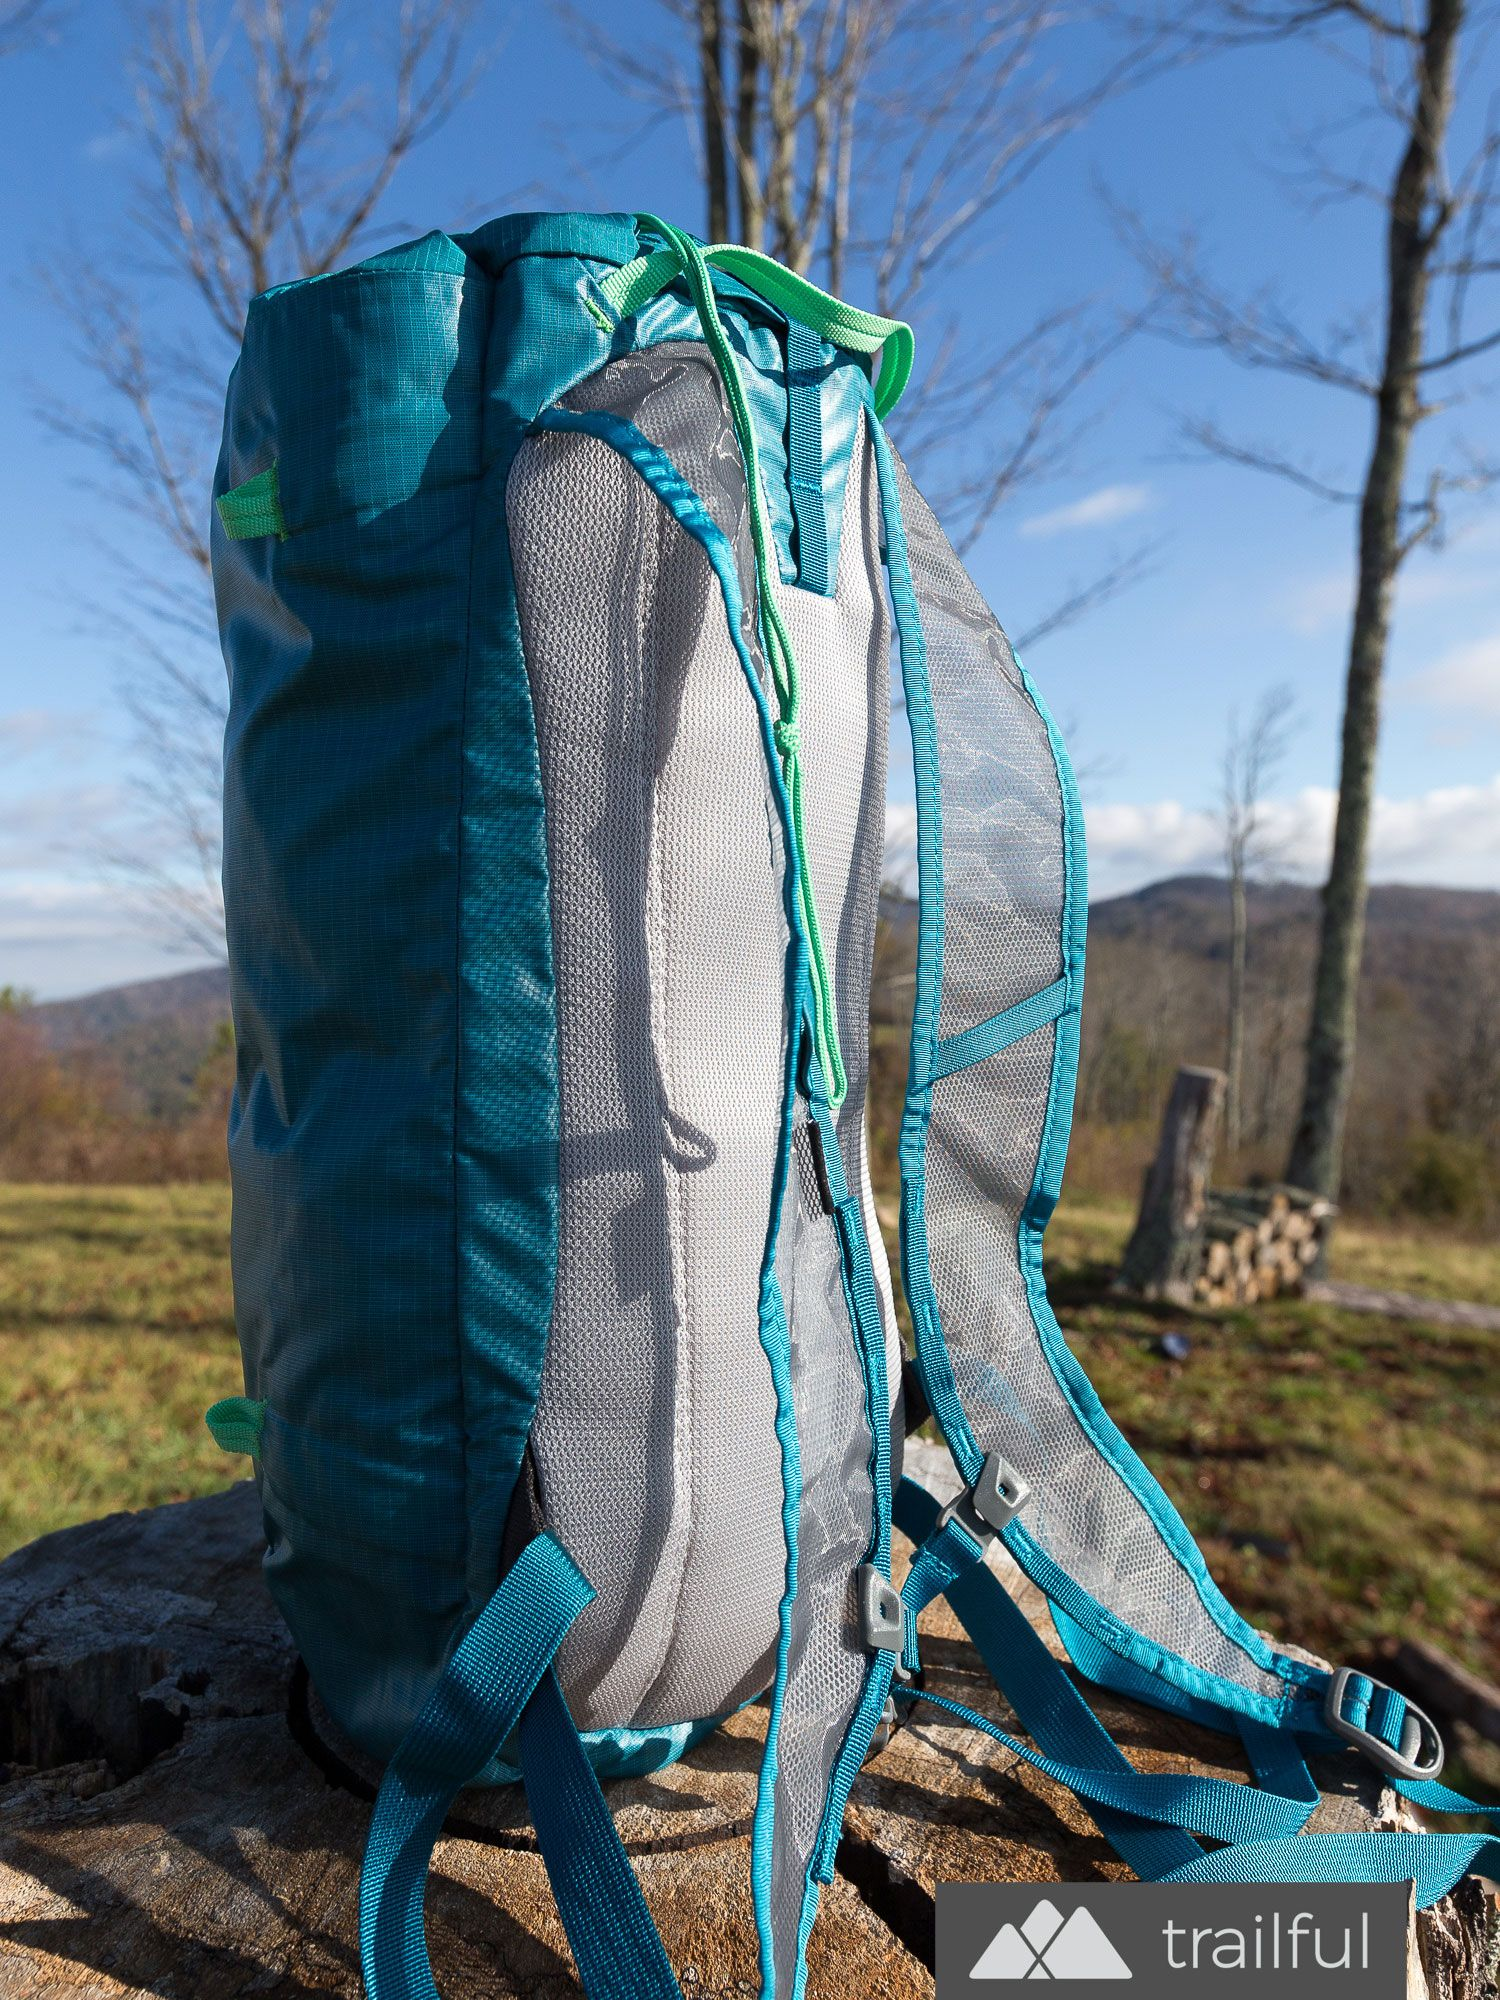 Thule Stir 15l Backpack Review Hiking Gear Hiking Gear